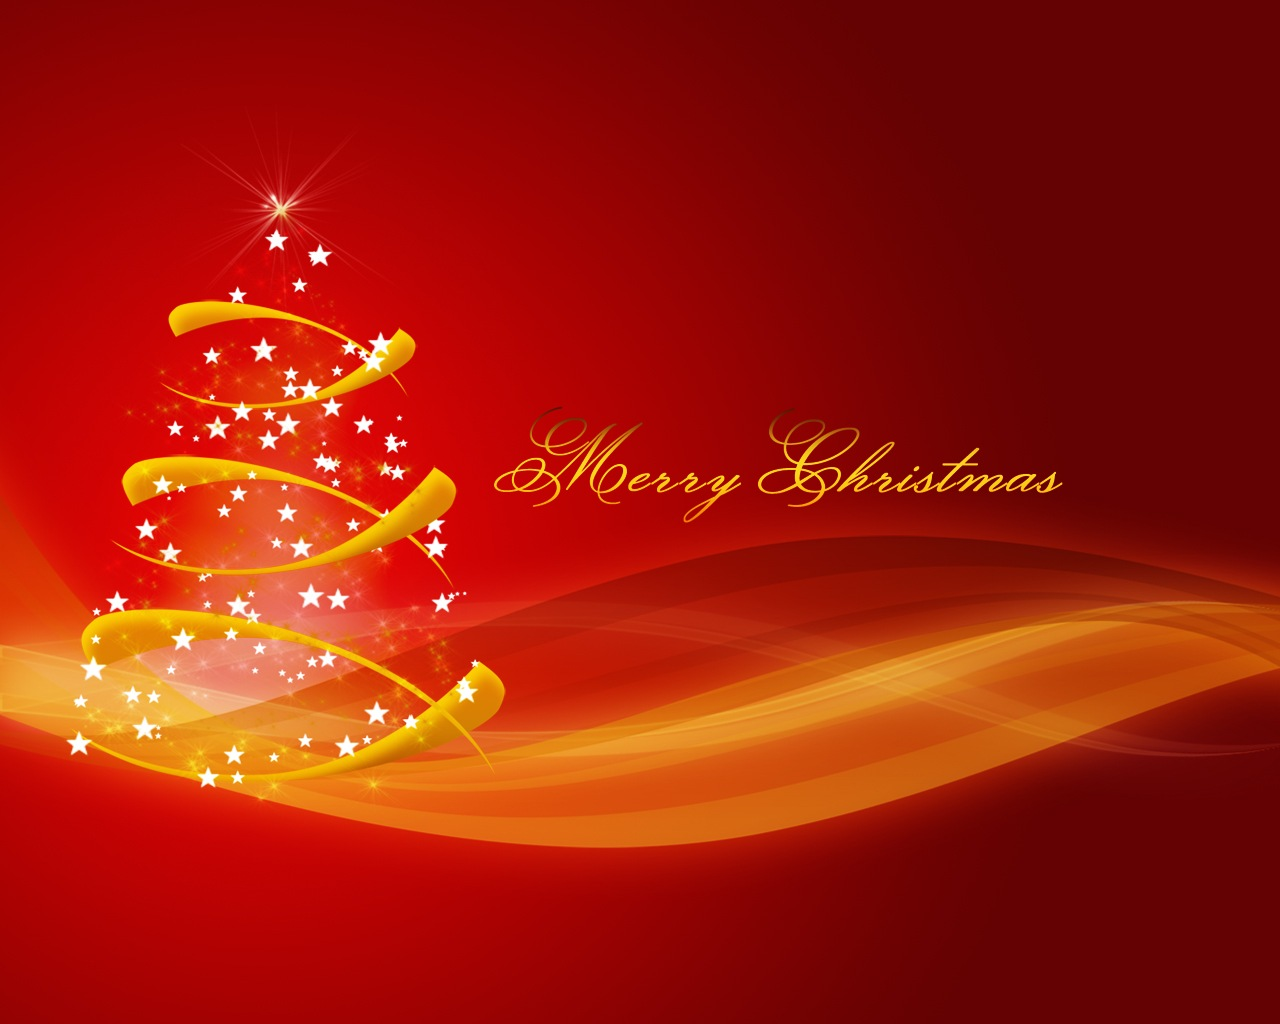 Husband Christmas Cards Pictures Wallpapers